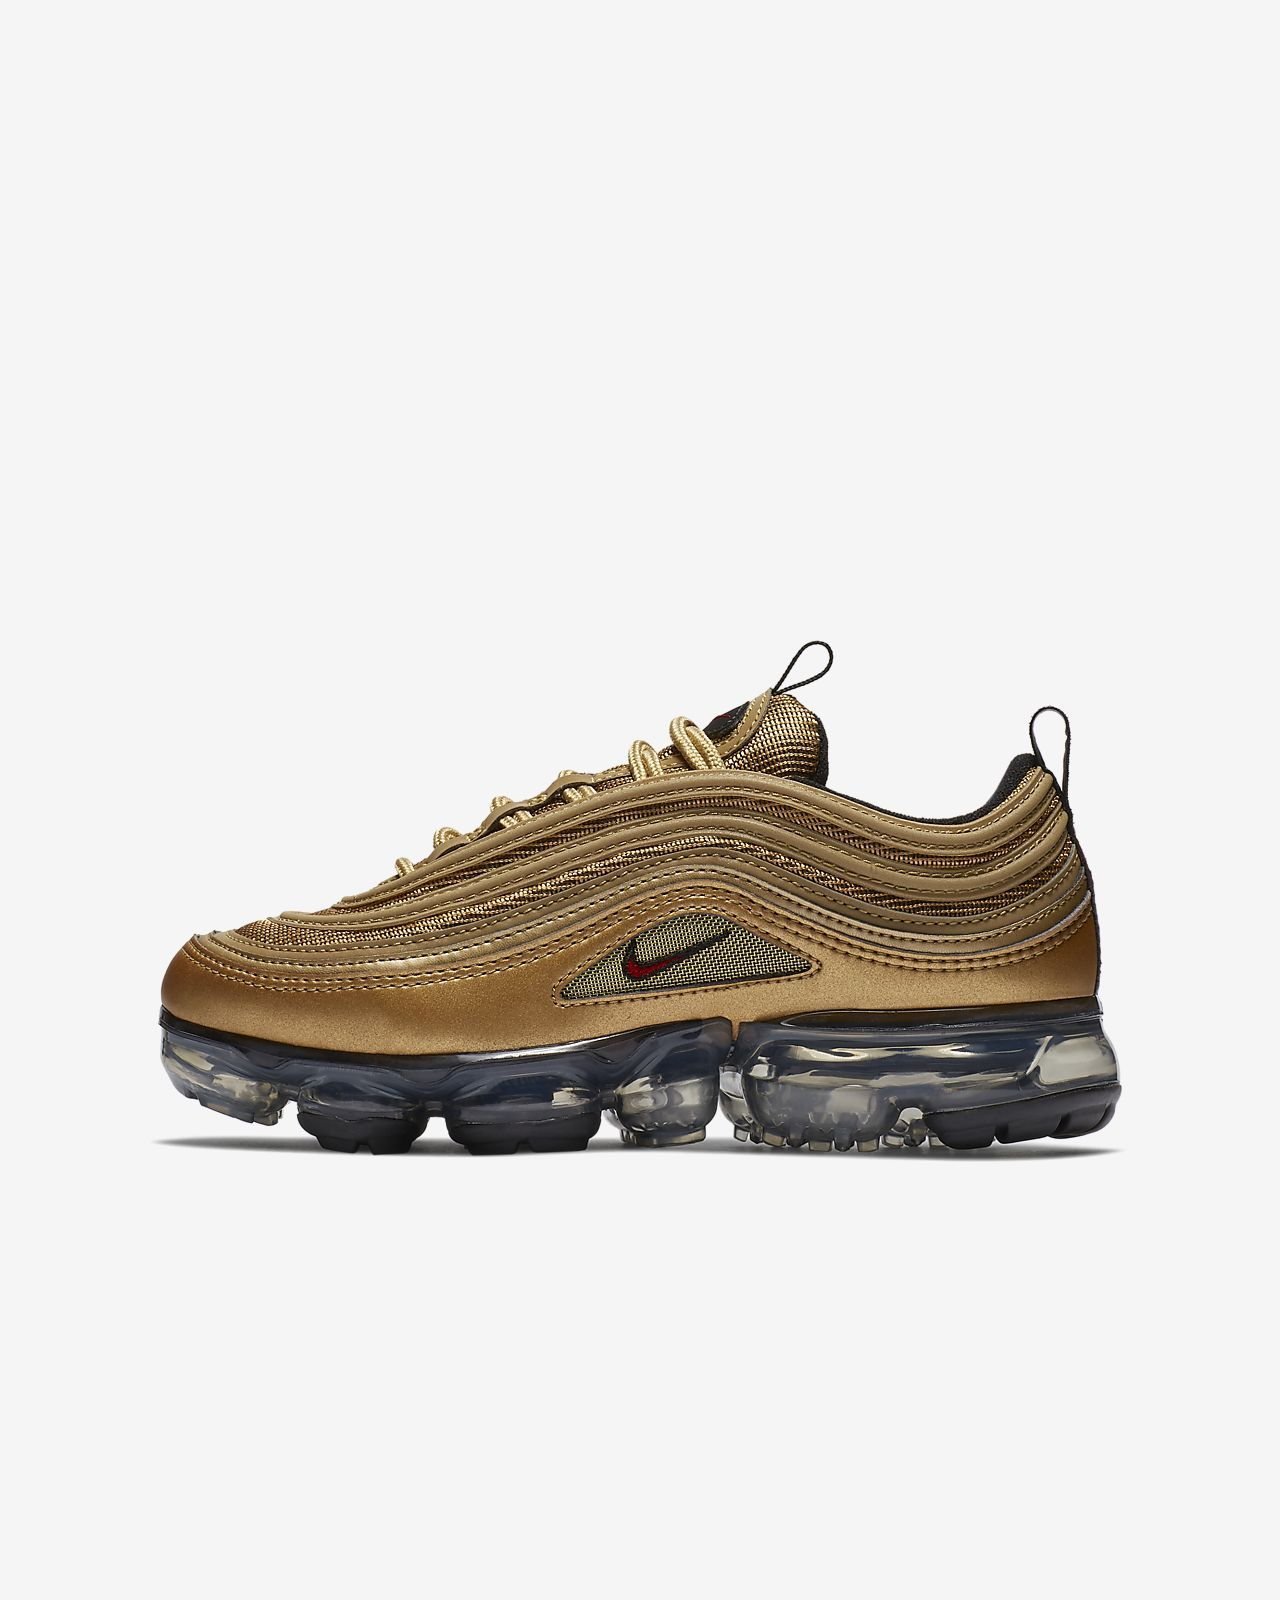 26a657ab02b Big Kids  Nike Air VaporMax 97 Shoe Metallic Gold Black White Varsity Red  Style  AQ2657-700